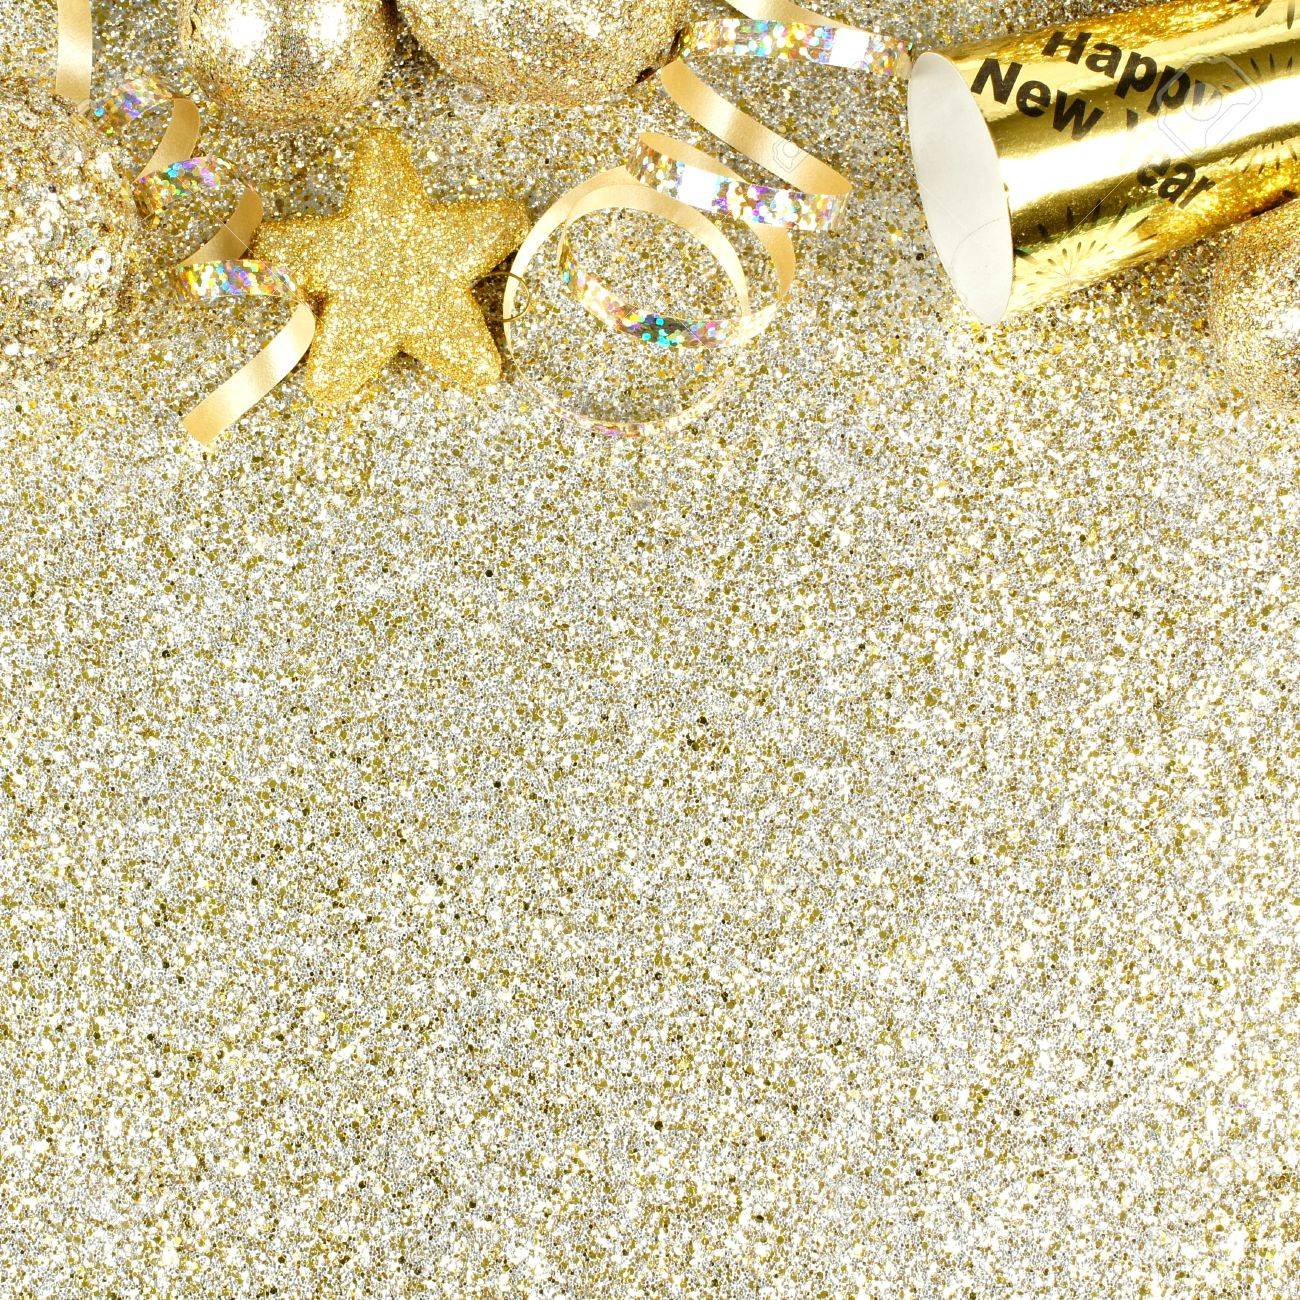 new years eve top border of streamers and decorations over a glittery gold background stock photo